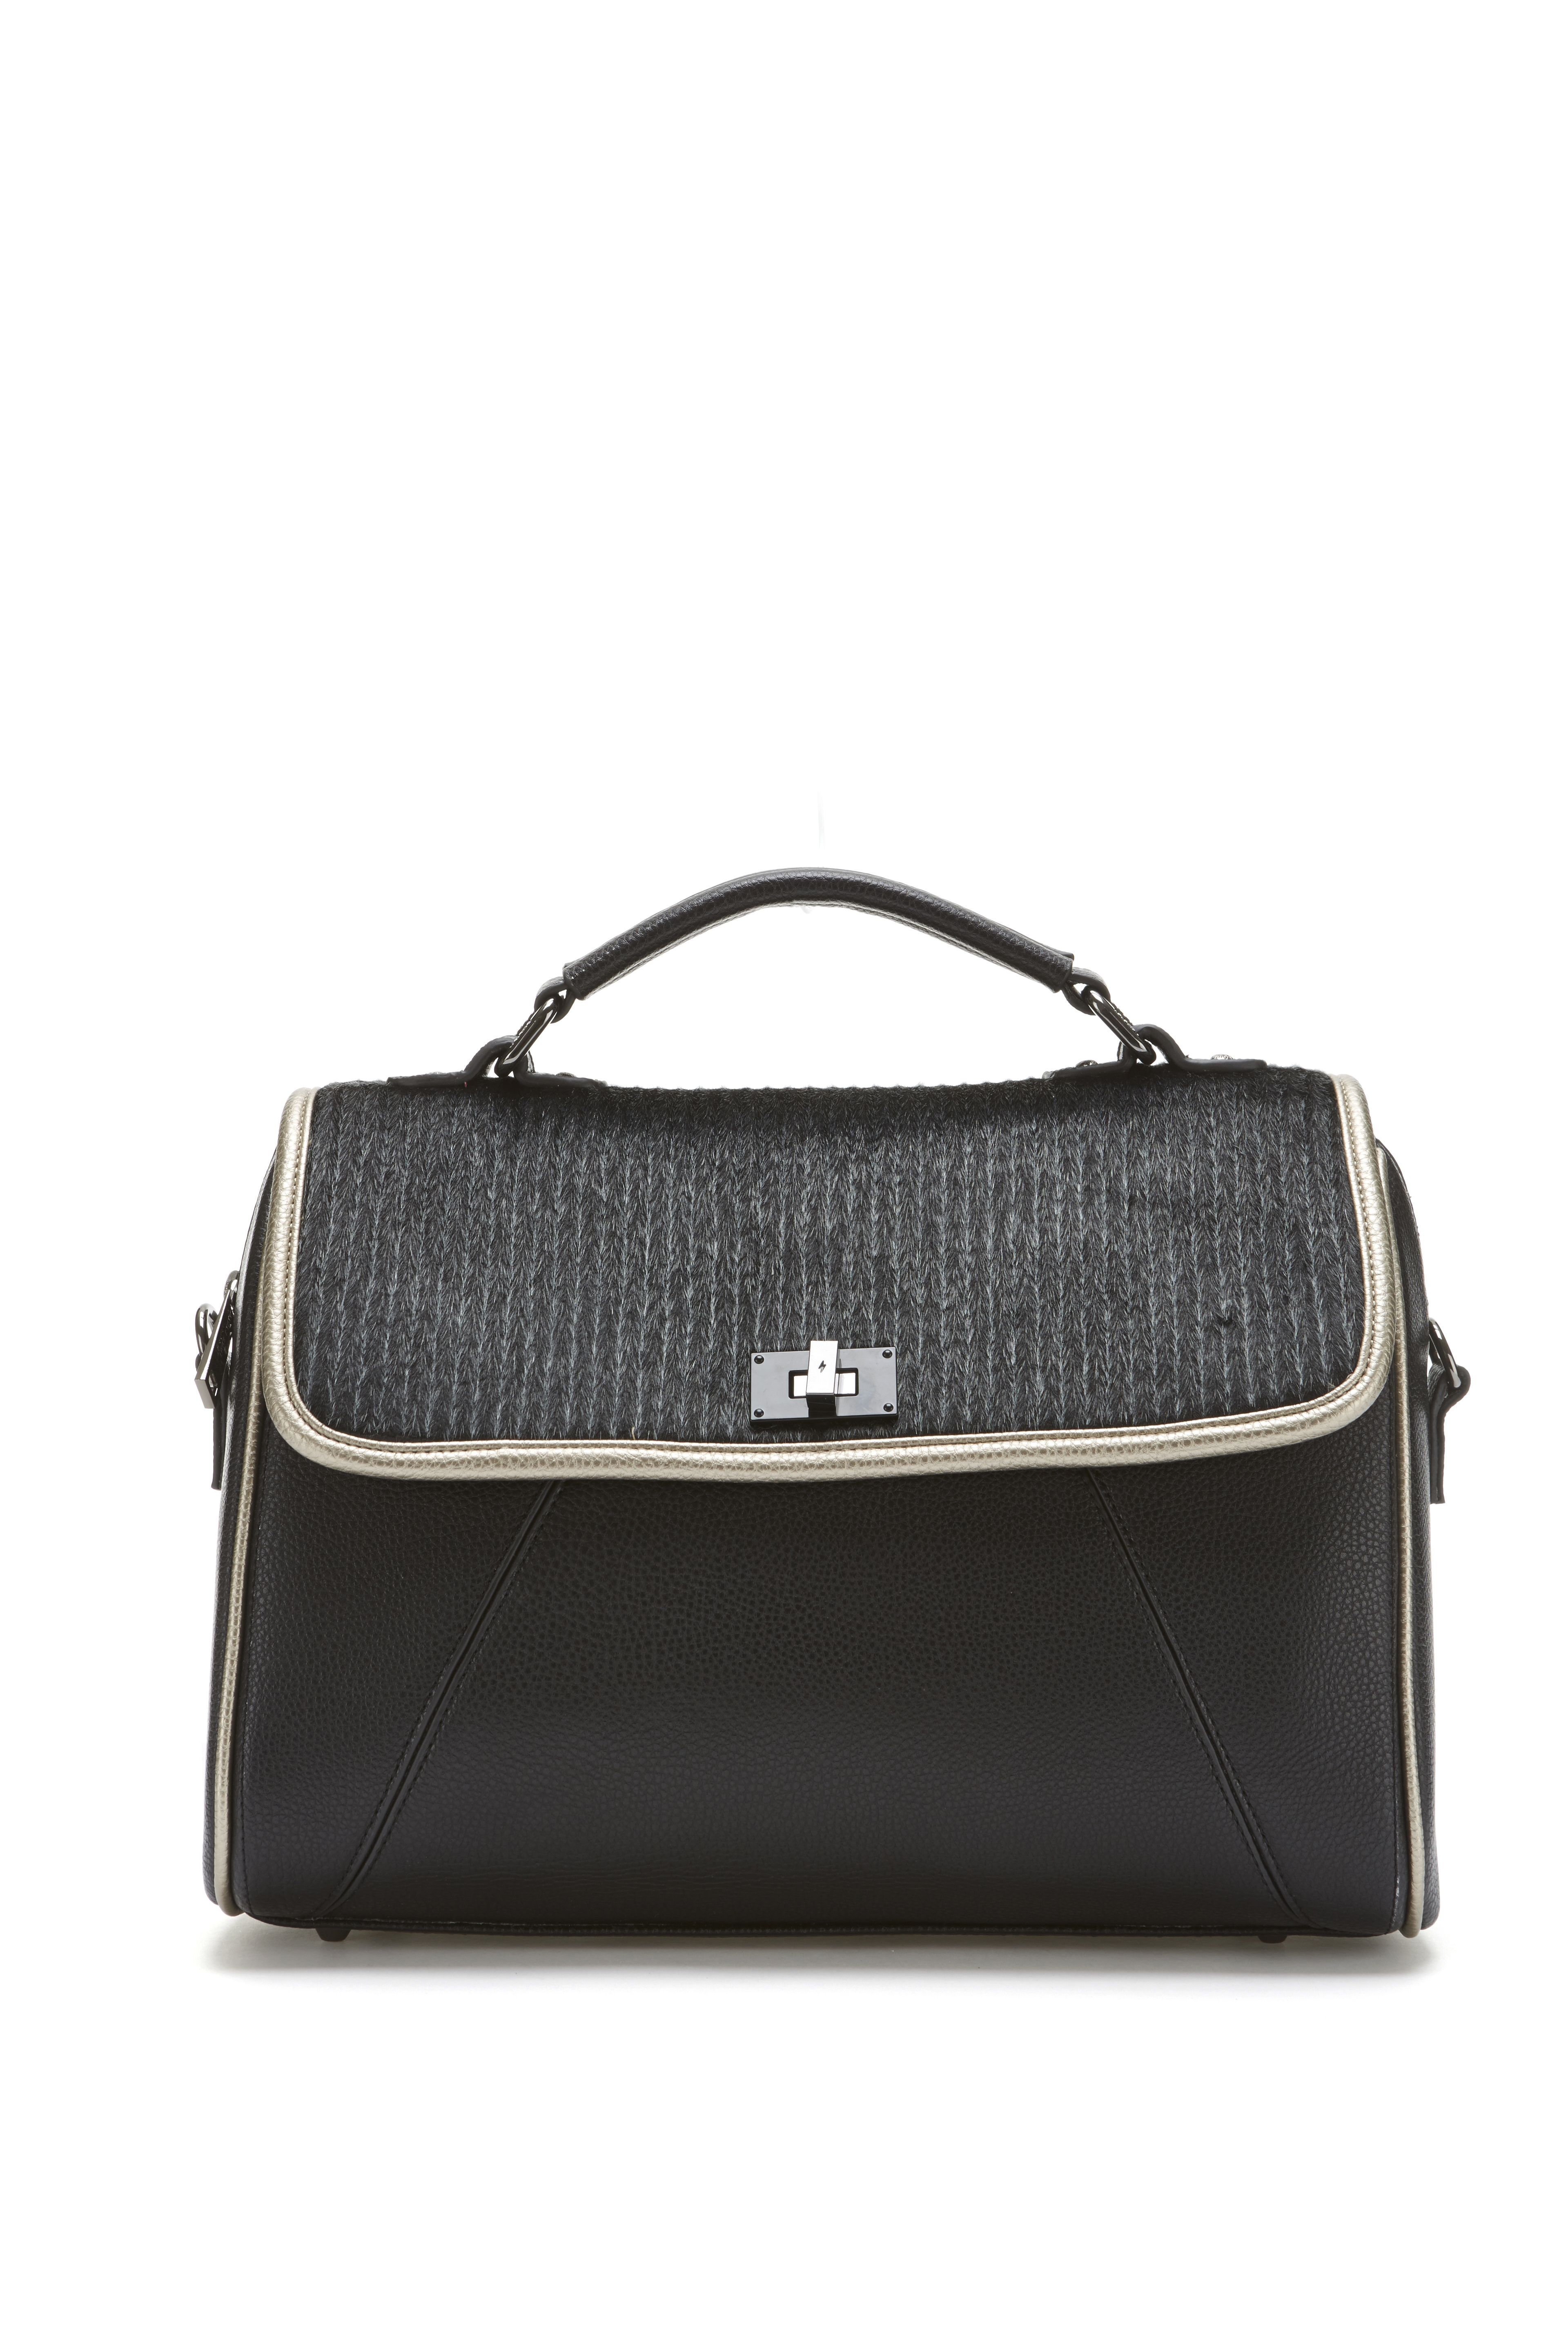 Paige Larger Satchel Bag With Faux Pony Hair Panel And Gold Trims